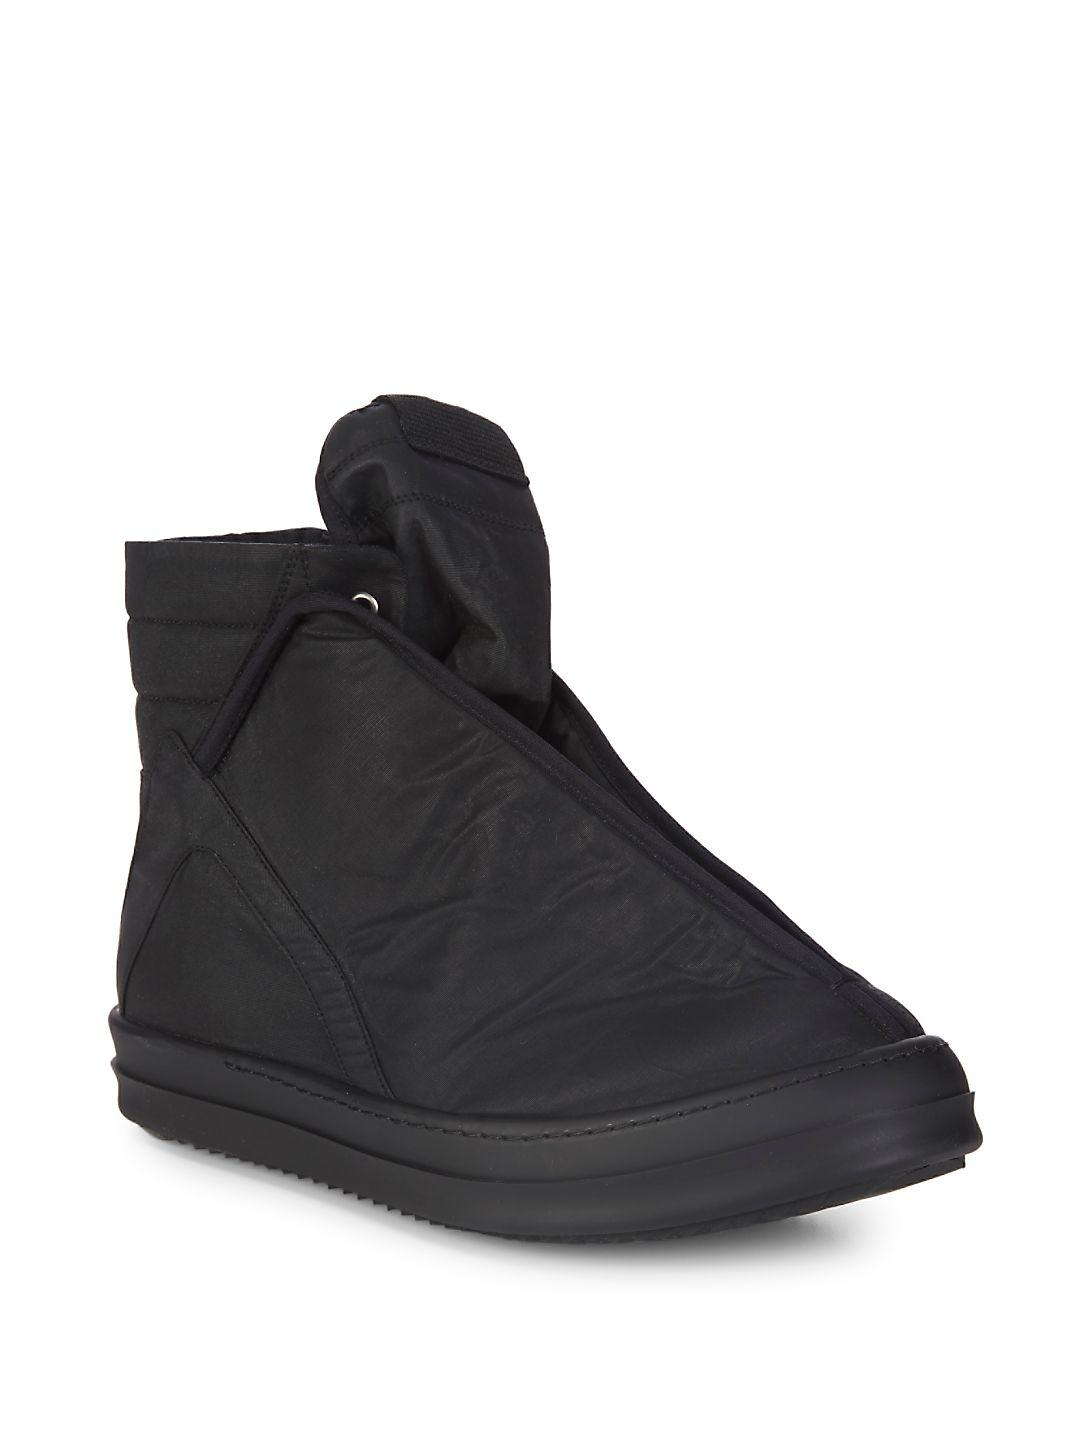 DRKSHDW by Rick Owens - Black Hoofdunks Ankle Boots - Lyst. View  Fullscreen. There was a problem loading this image.